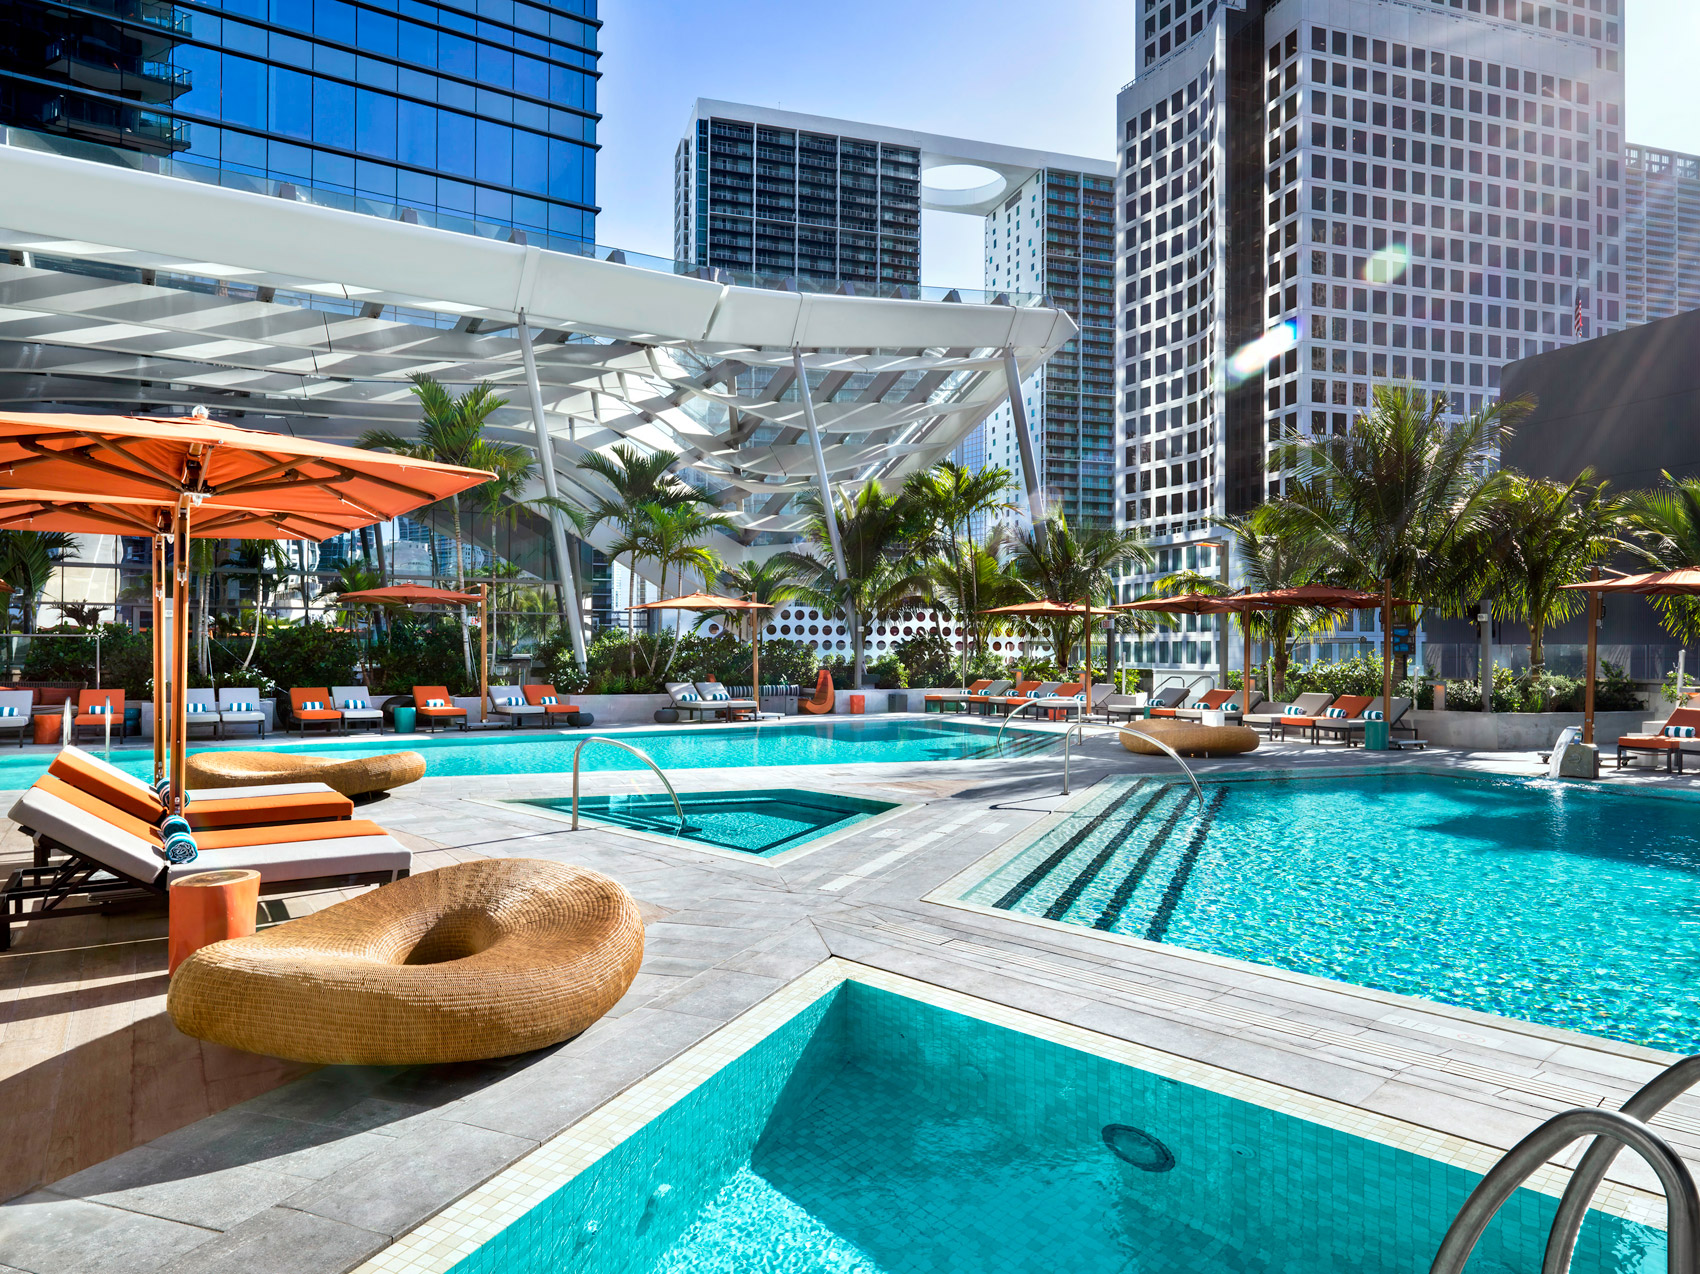 Swire Hotels' Introduce New Long-term Residences At EAST, Miami